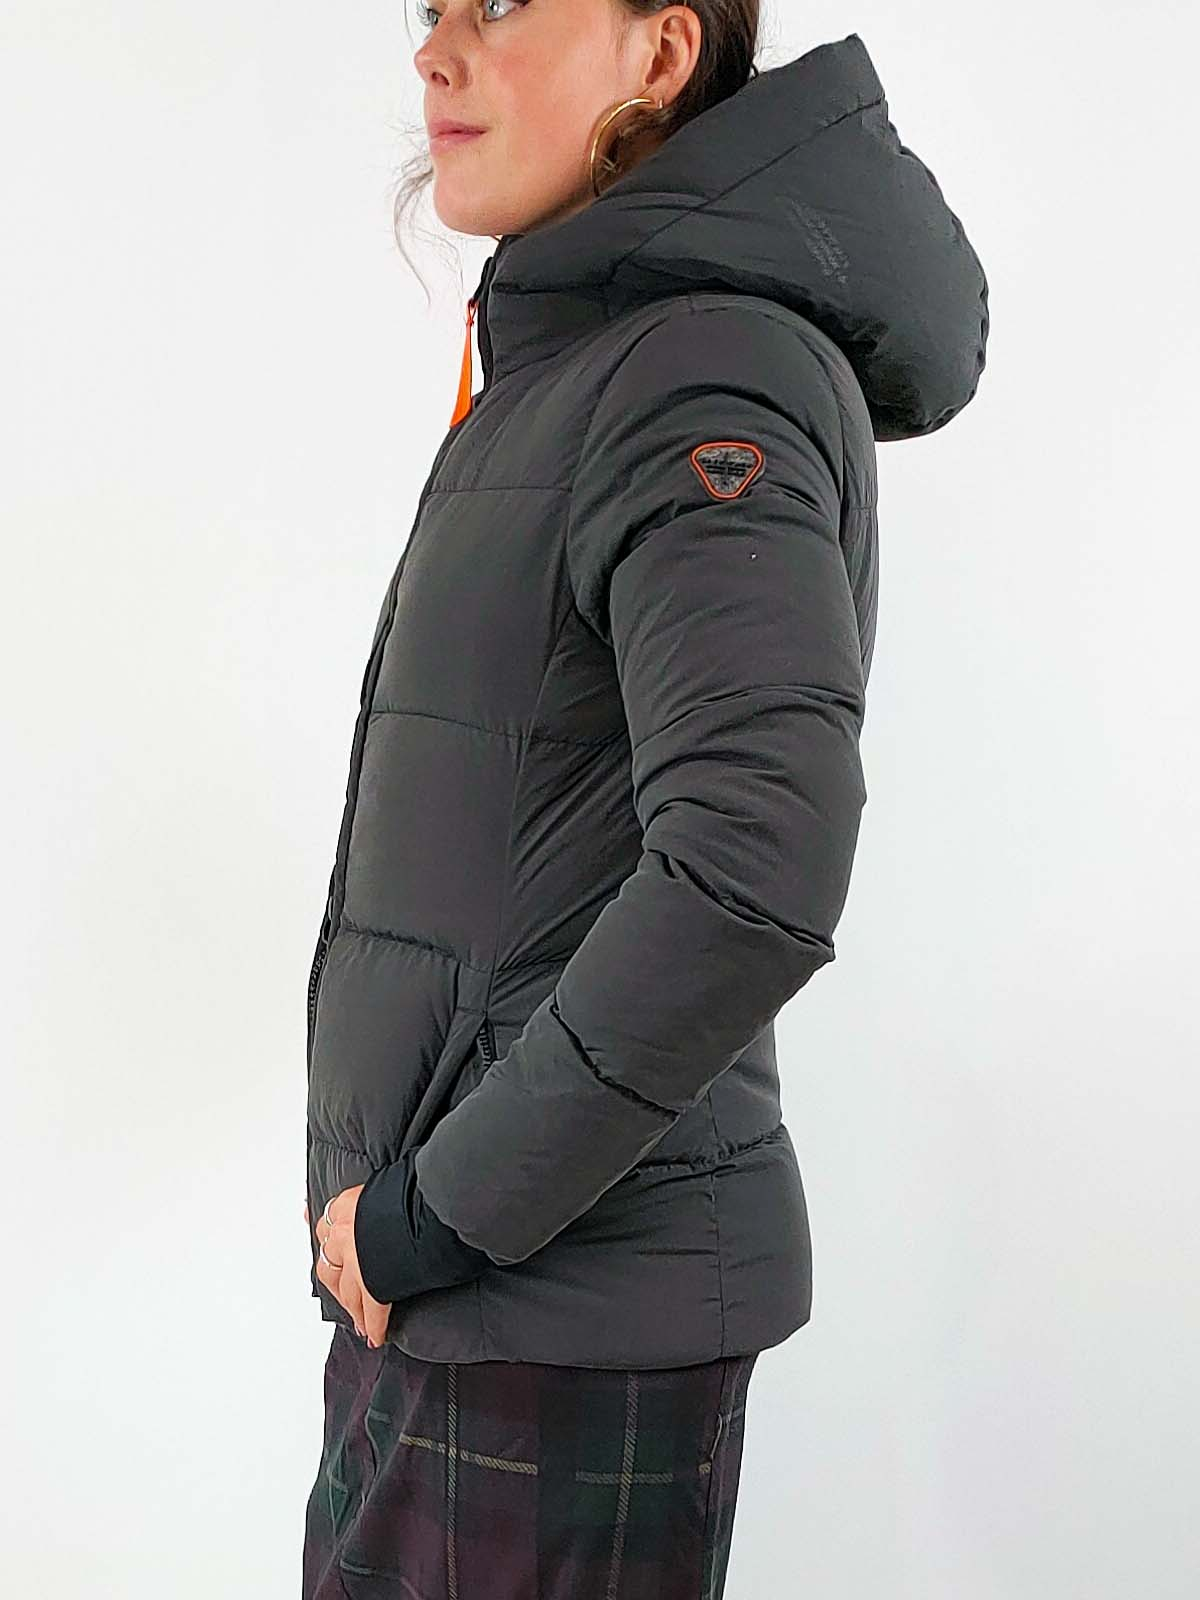 Gertrude + Gaston Padded Coat [DIANE] in Charcoal Black